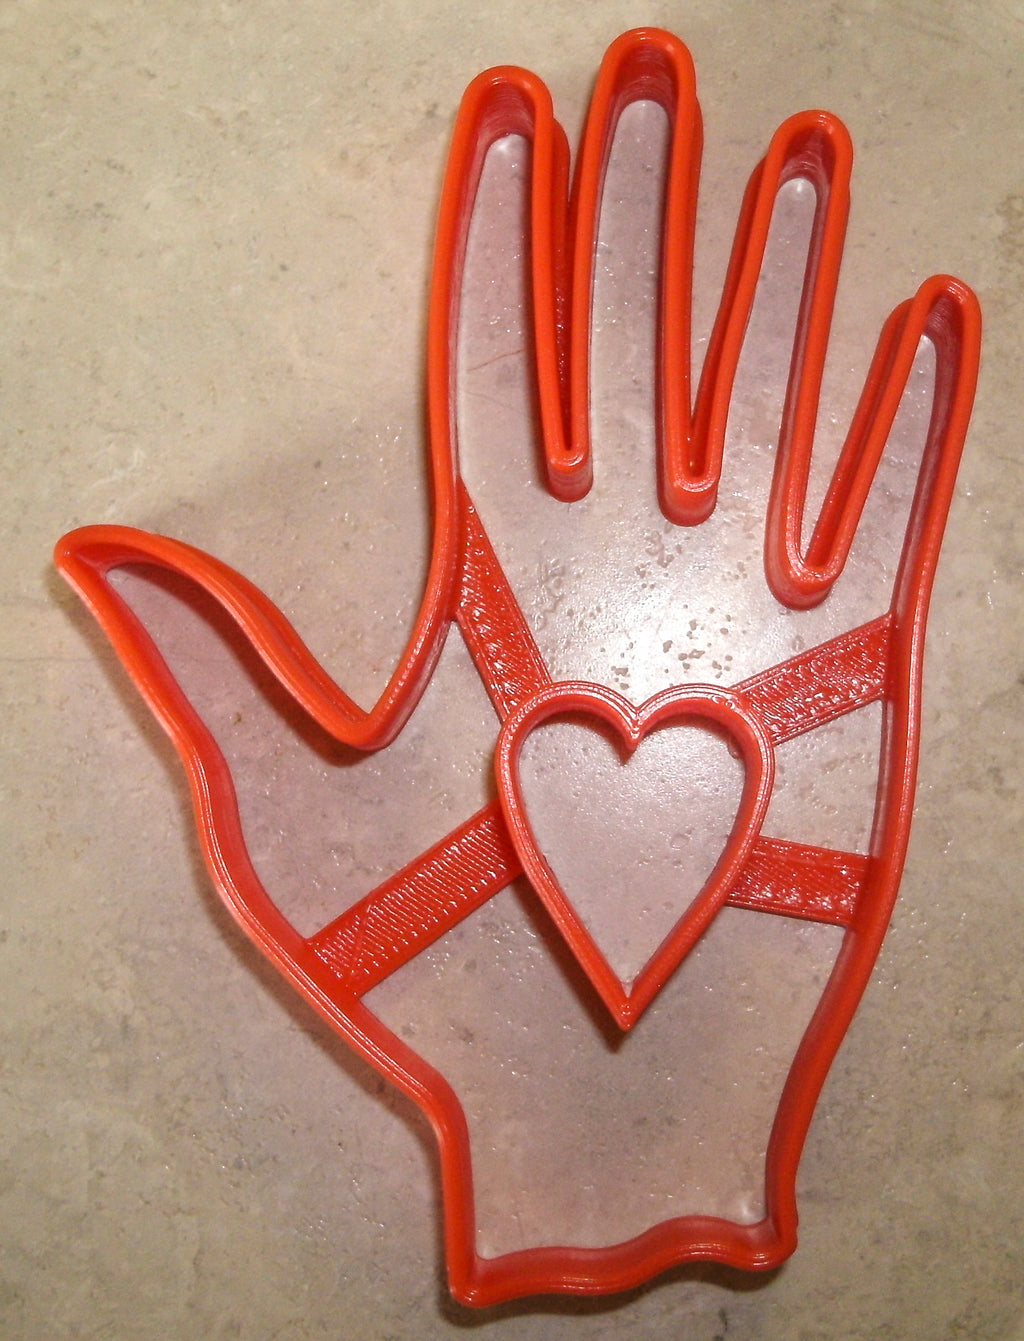 "Hand with Heart Charity Symbol John Calvin Special Occasion Fondant Stamp Cutter or Cupcake Topper Size 1.75"" Made in USA FD606"